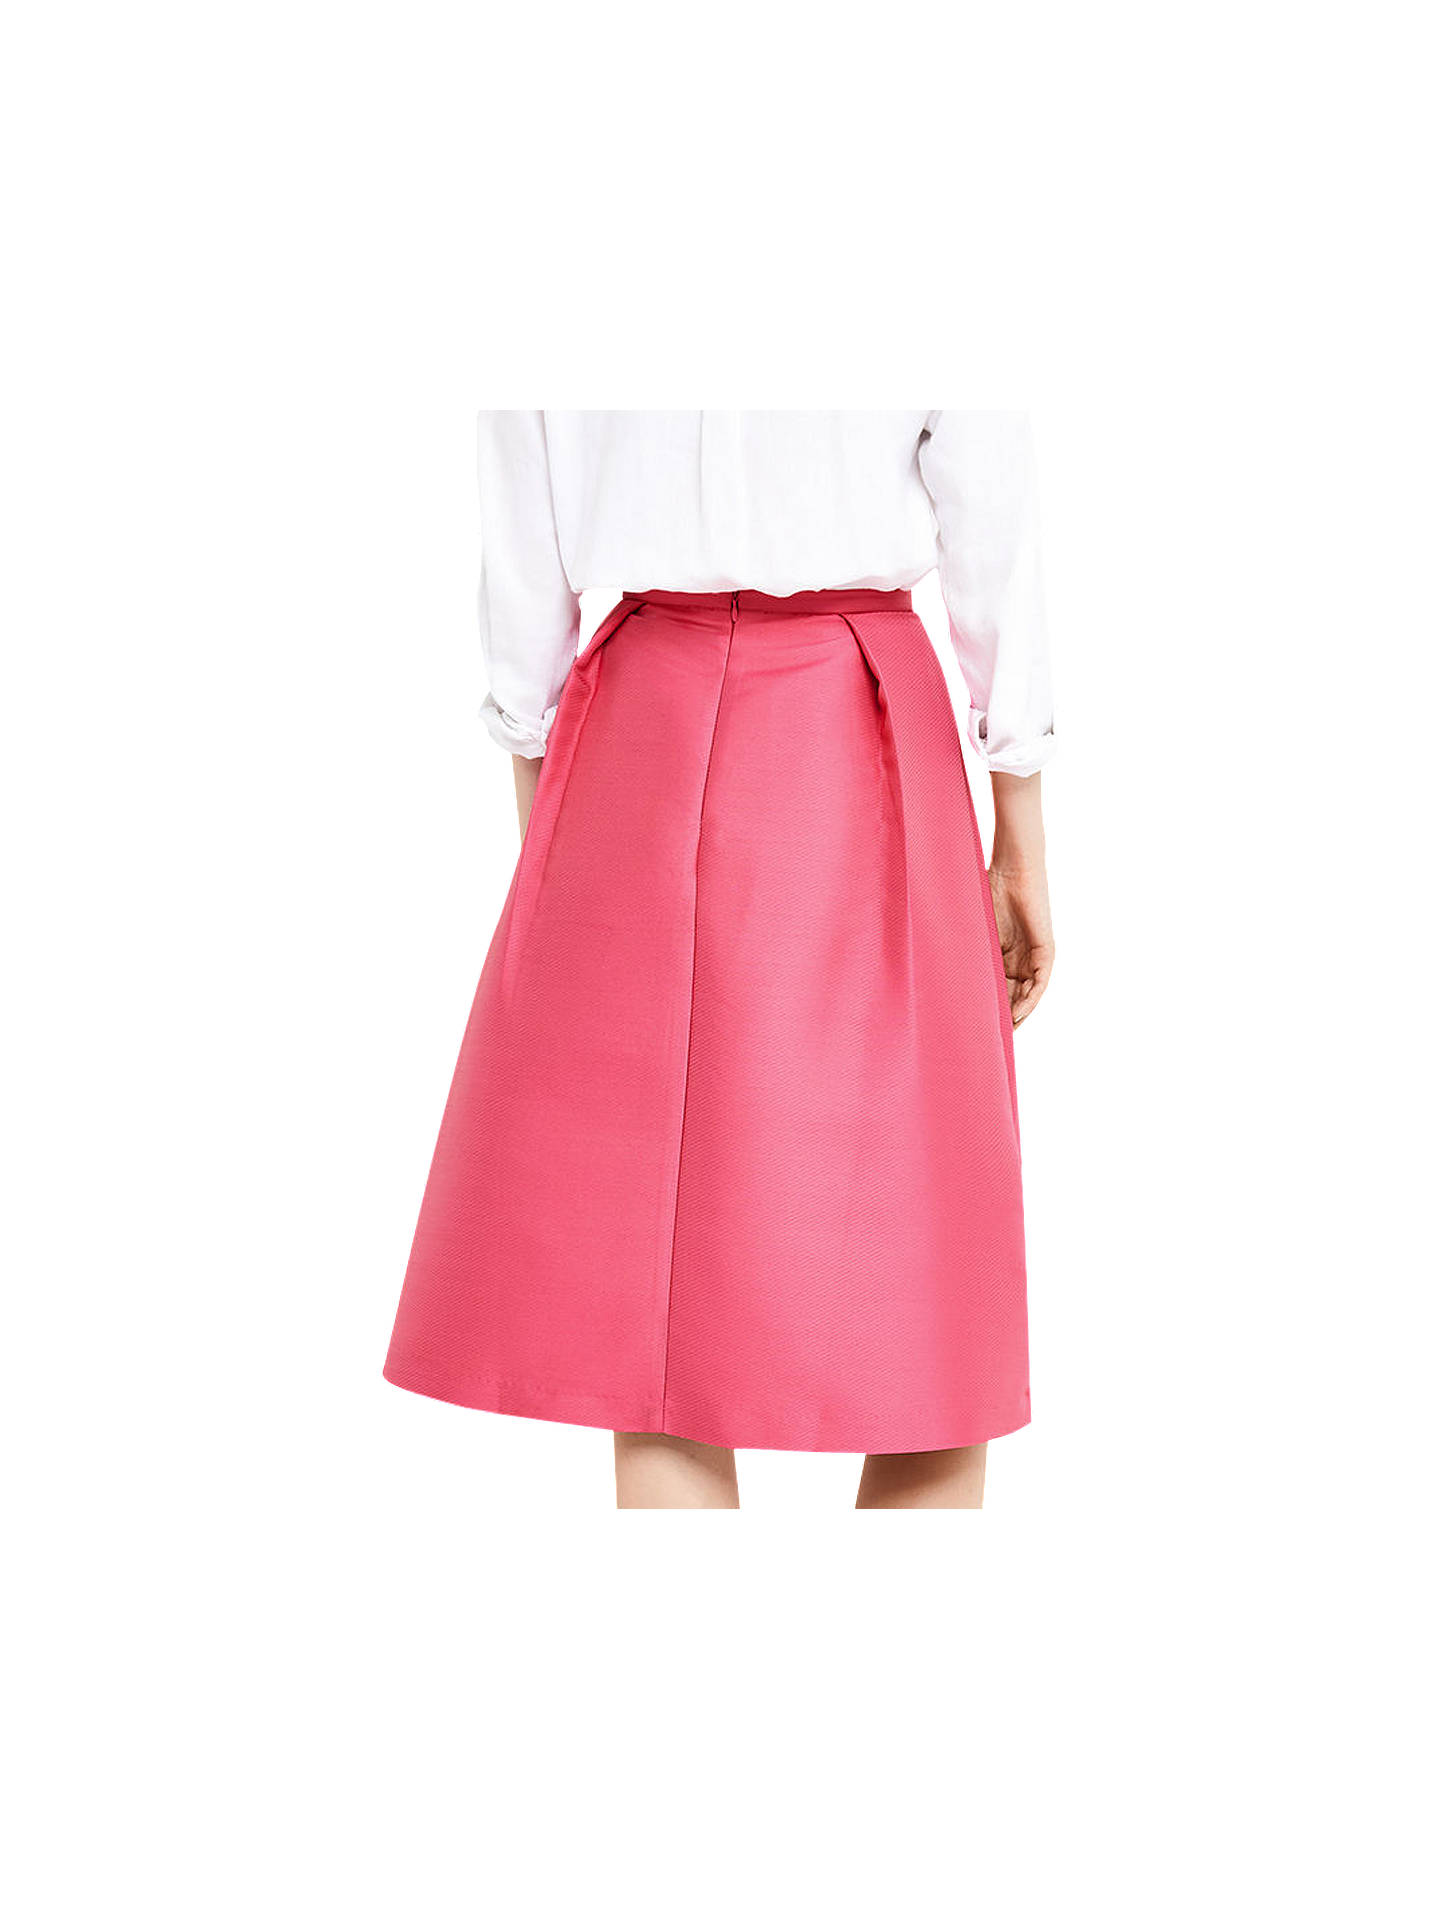 BuyOasis Satin Twill Midi Skirt, Bright Pink, 6 Online at johnlewis.com